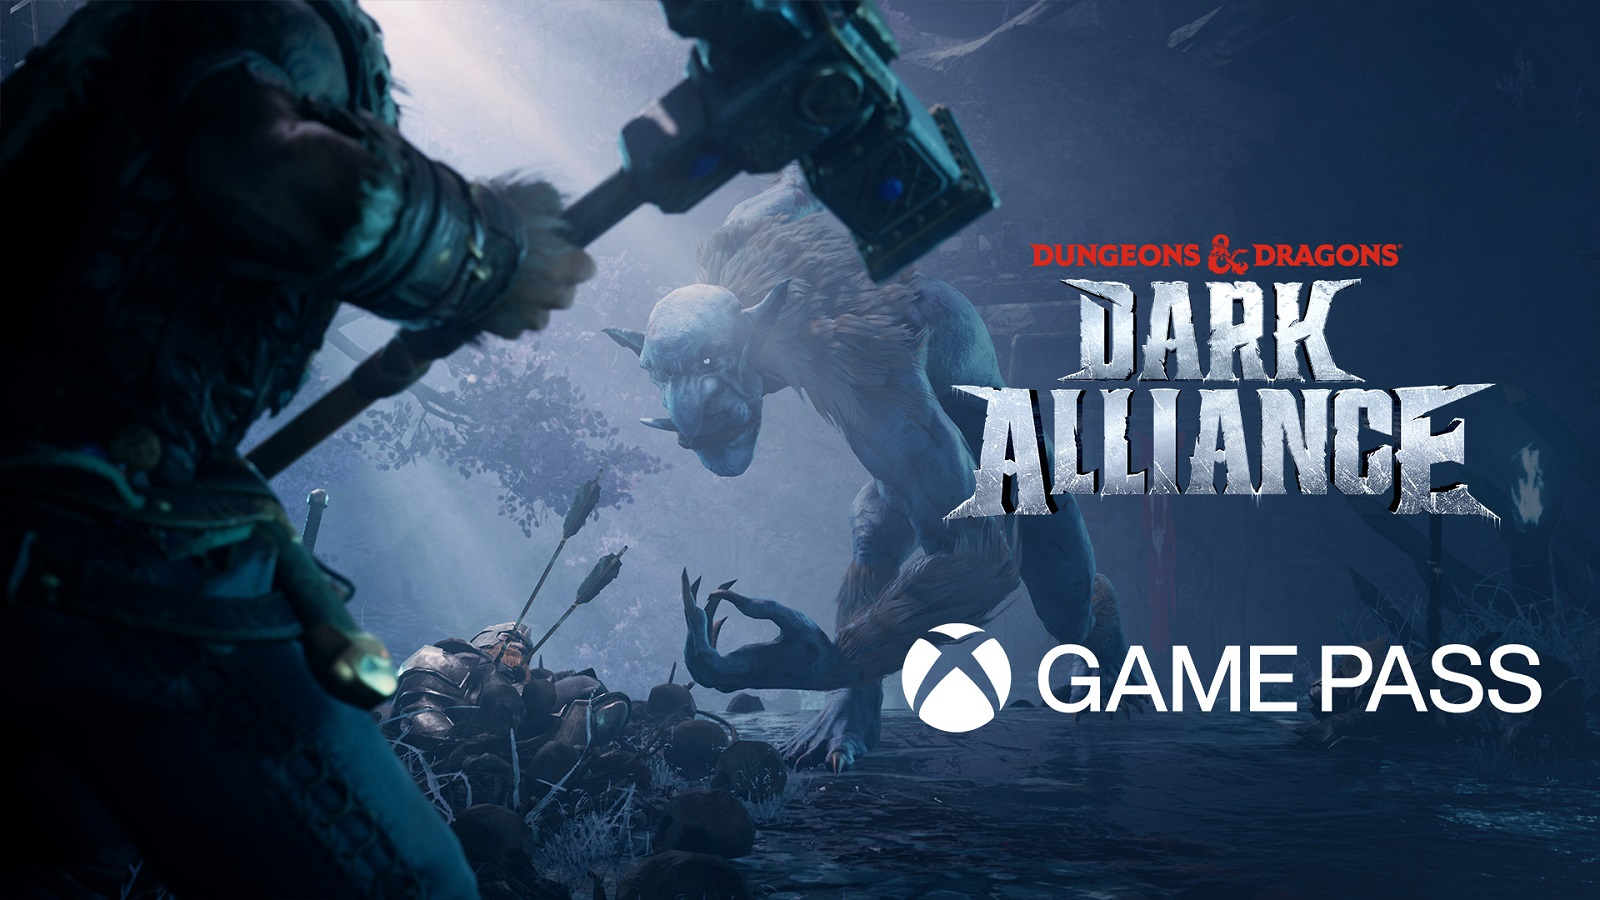 Dungeons & Dragons: Dark Alliance пополнит библиотеку Xbox Game Pass в день выхода